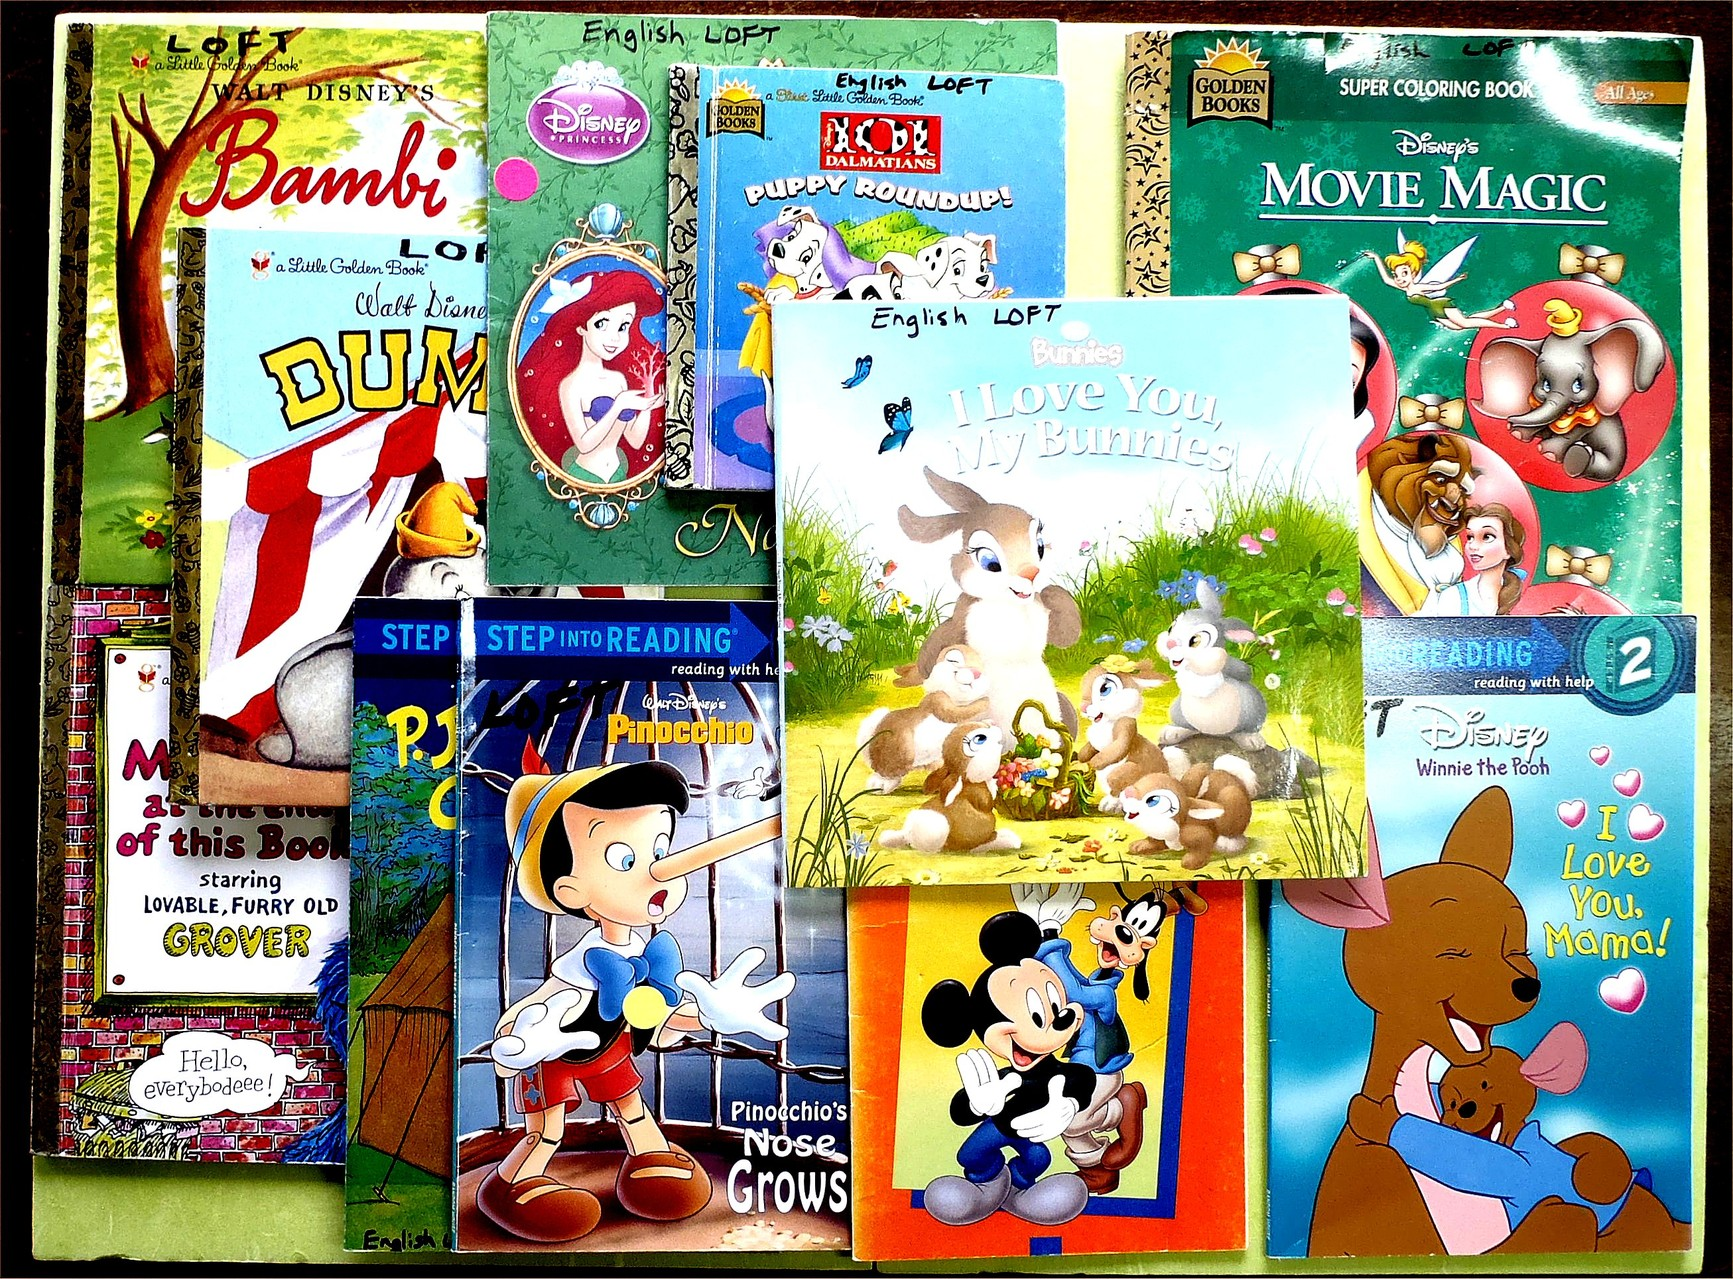 Some Disney books